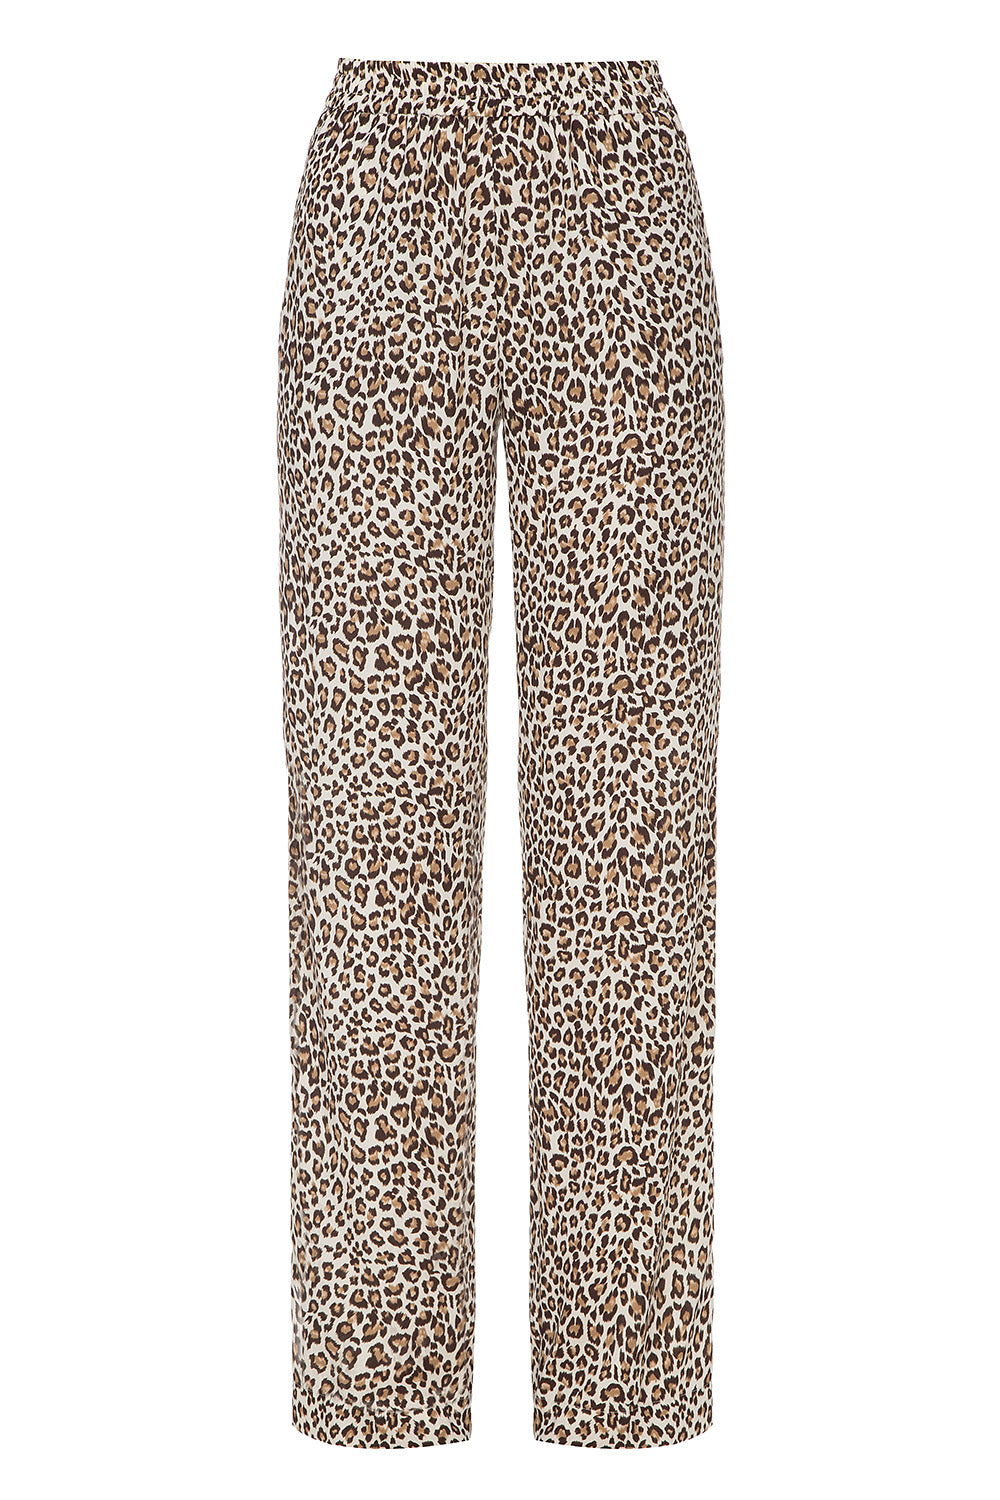 Leopard printed trousers